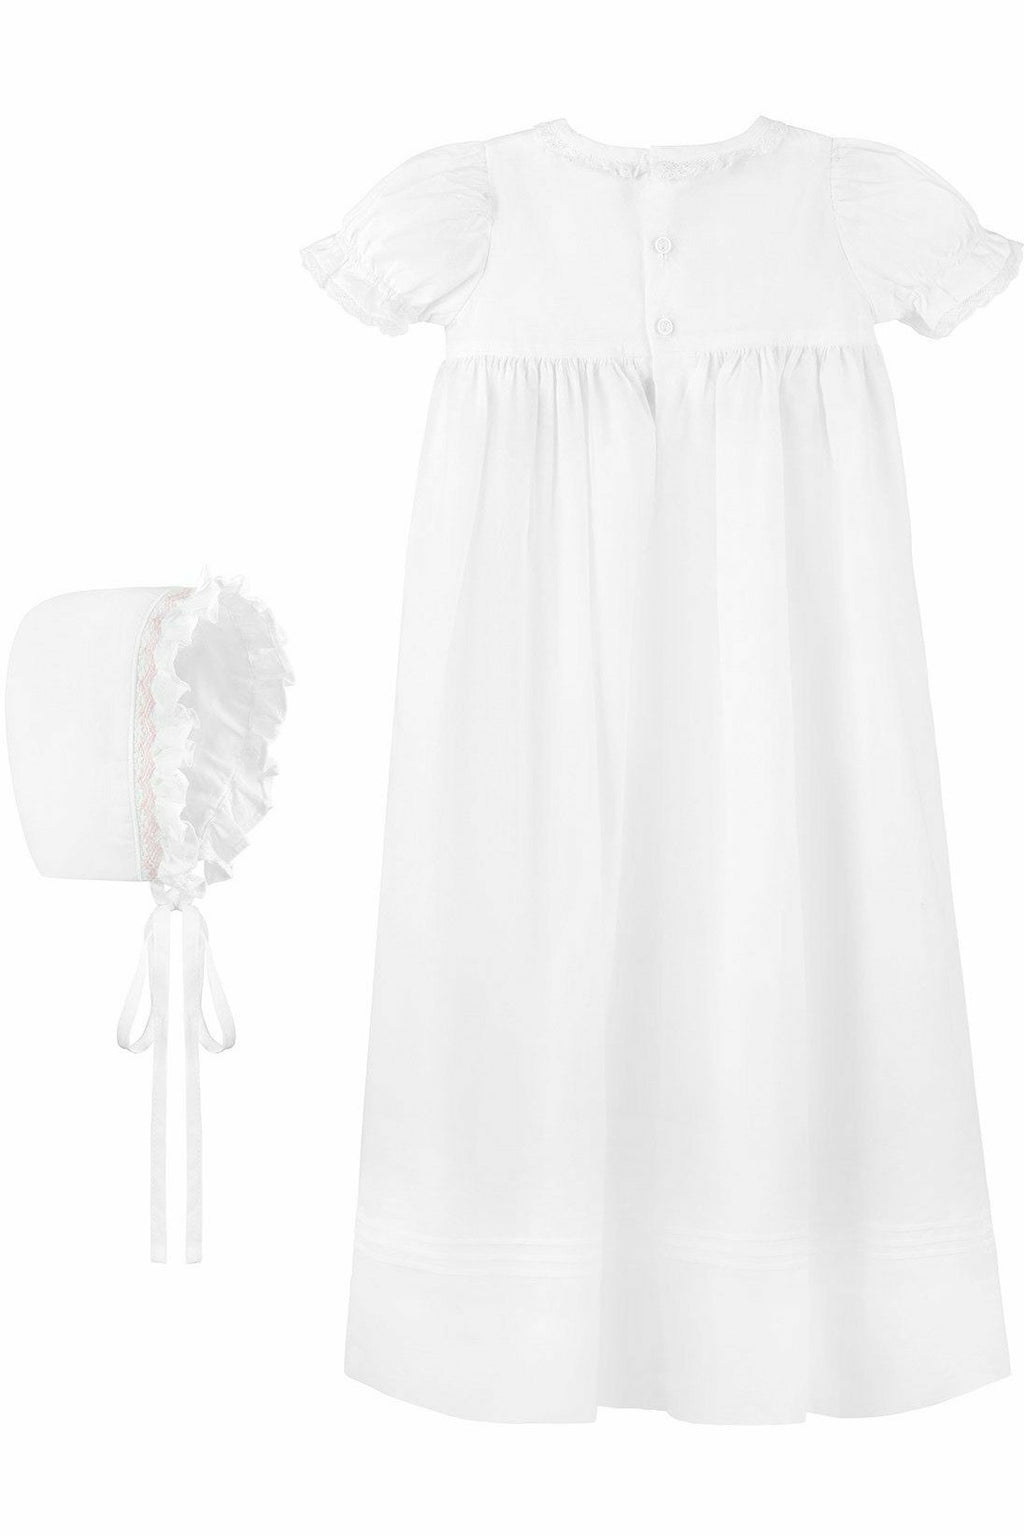 Baby Girl Long Bullion Cross Gown + Bonnet, , Carriage Boutique, Imagewear